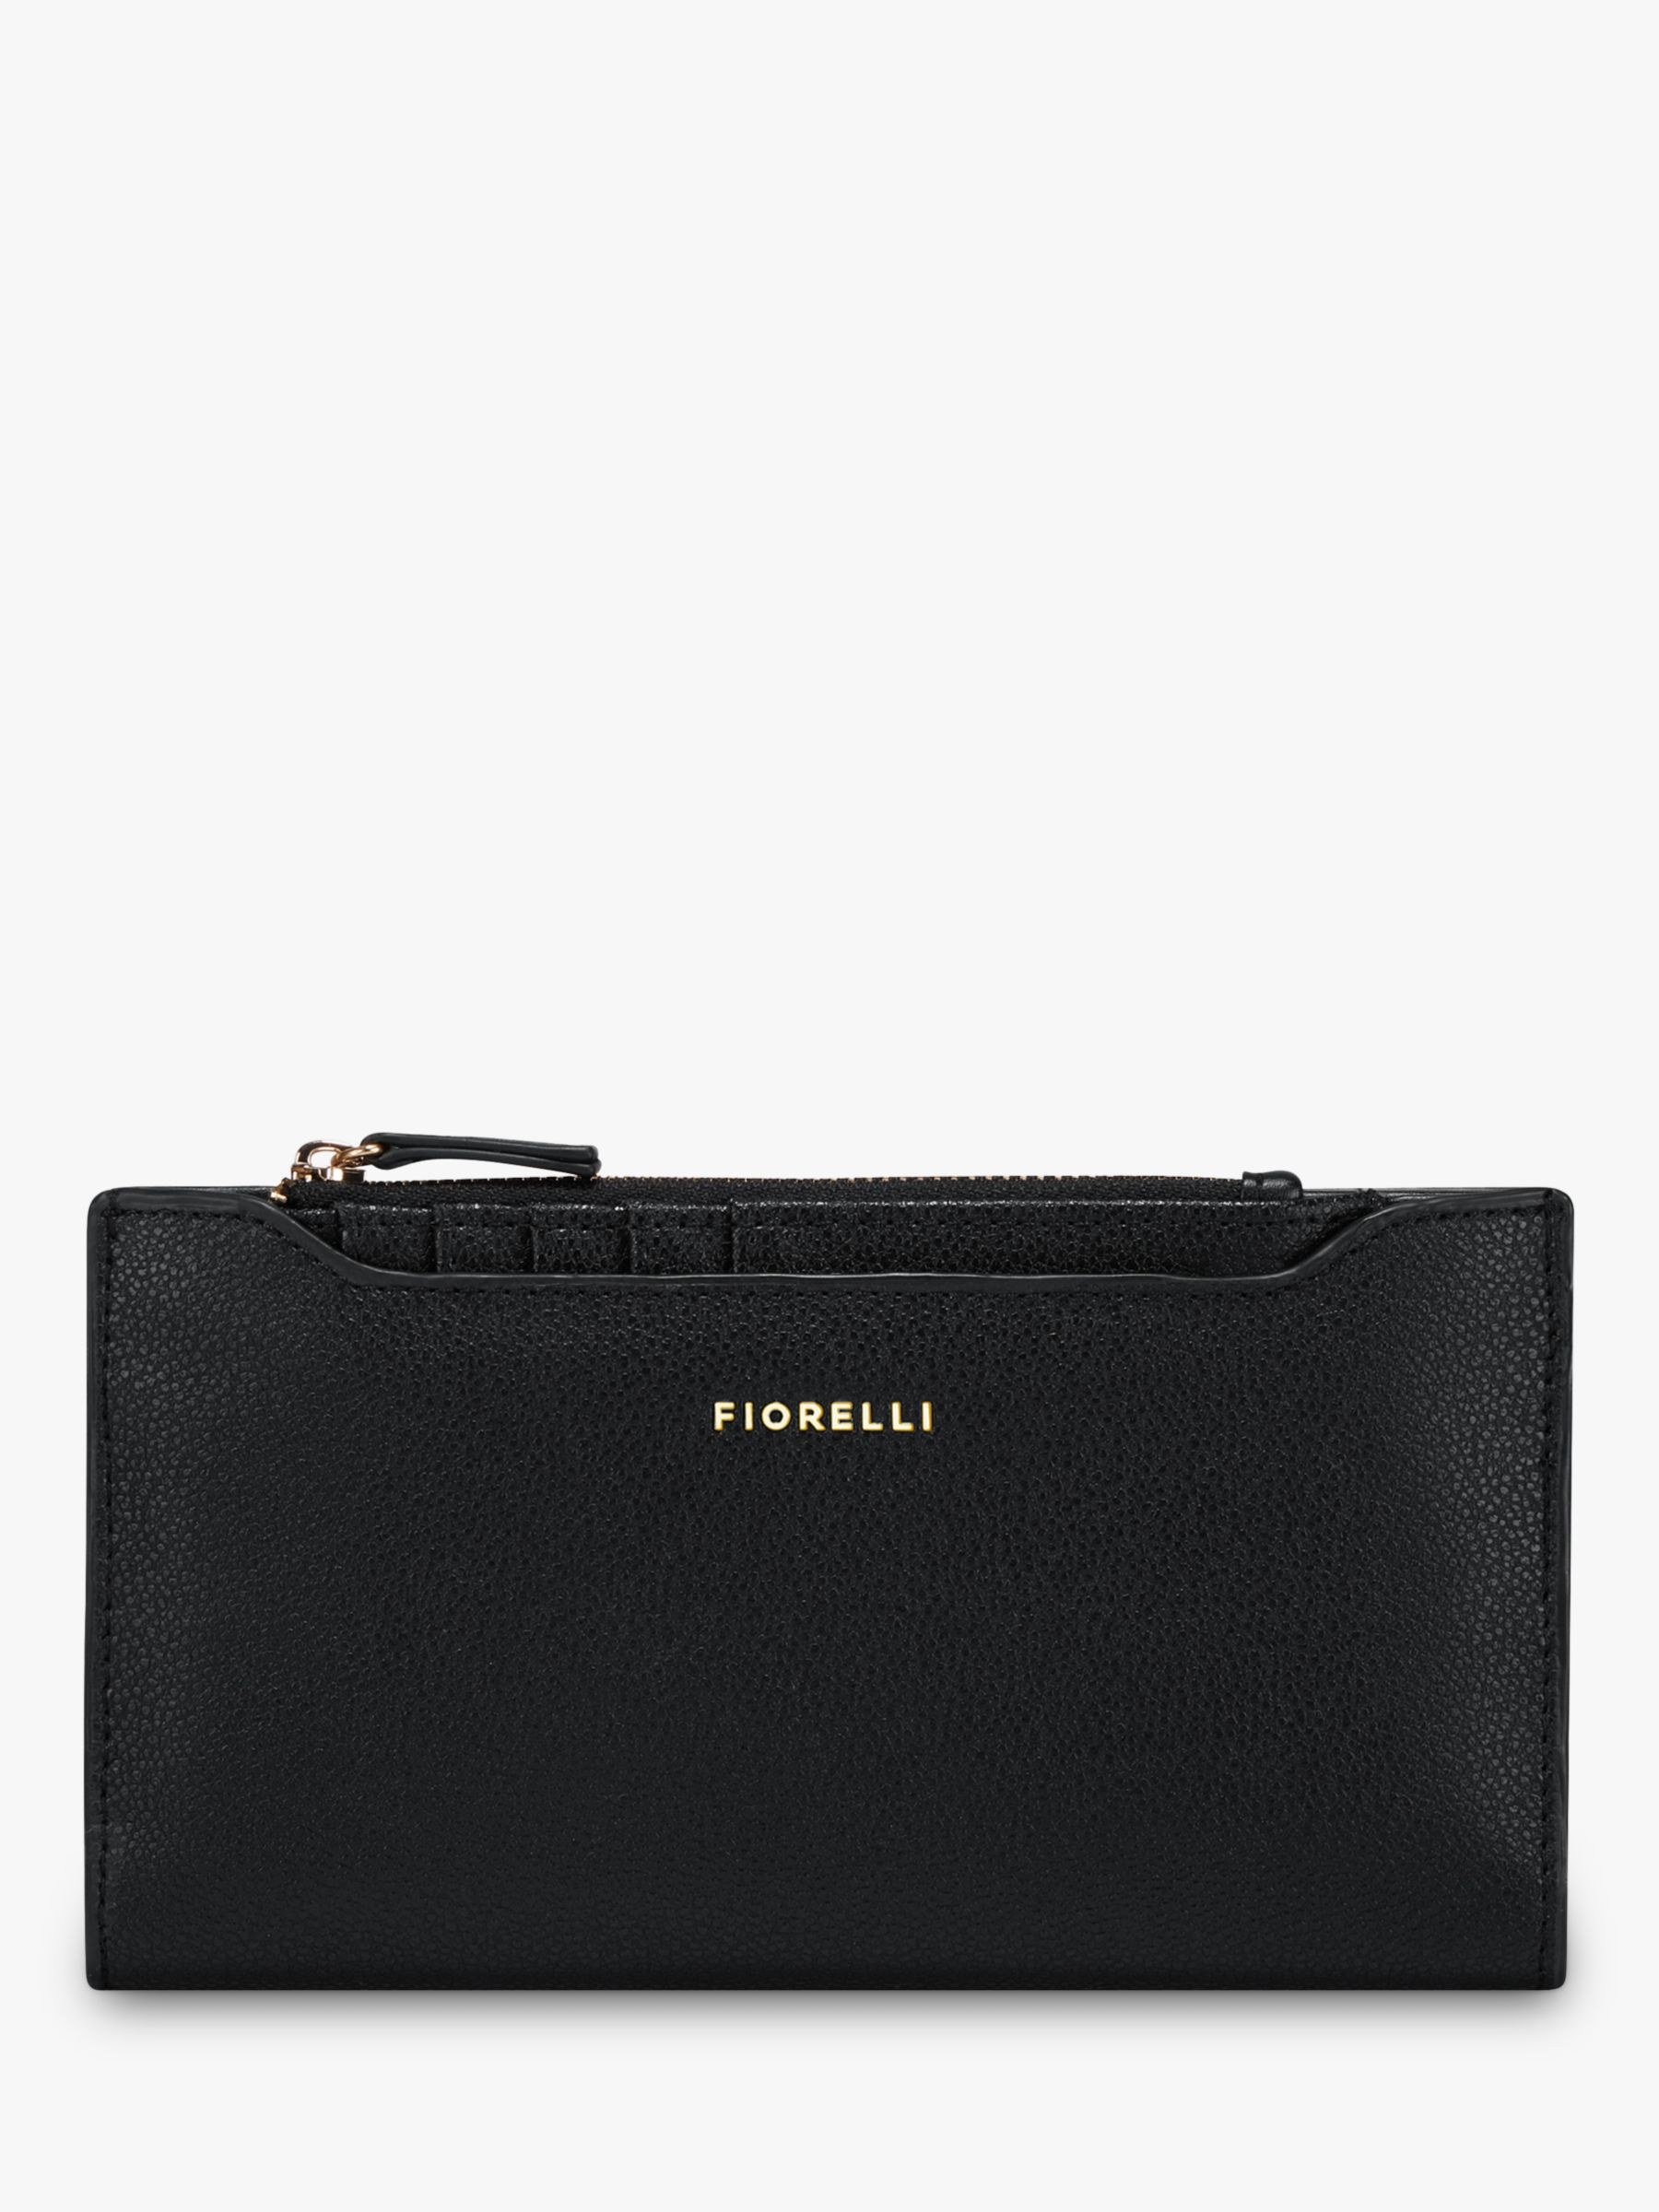 Fiorelli Fiorelli Trudy 2 in 1 Purse